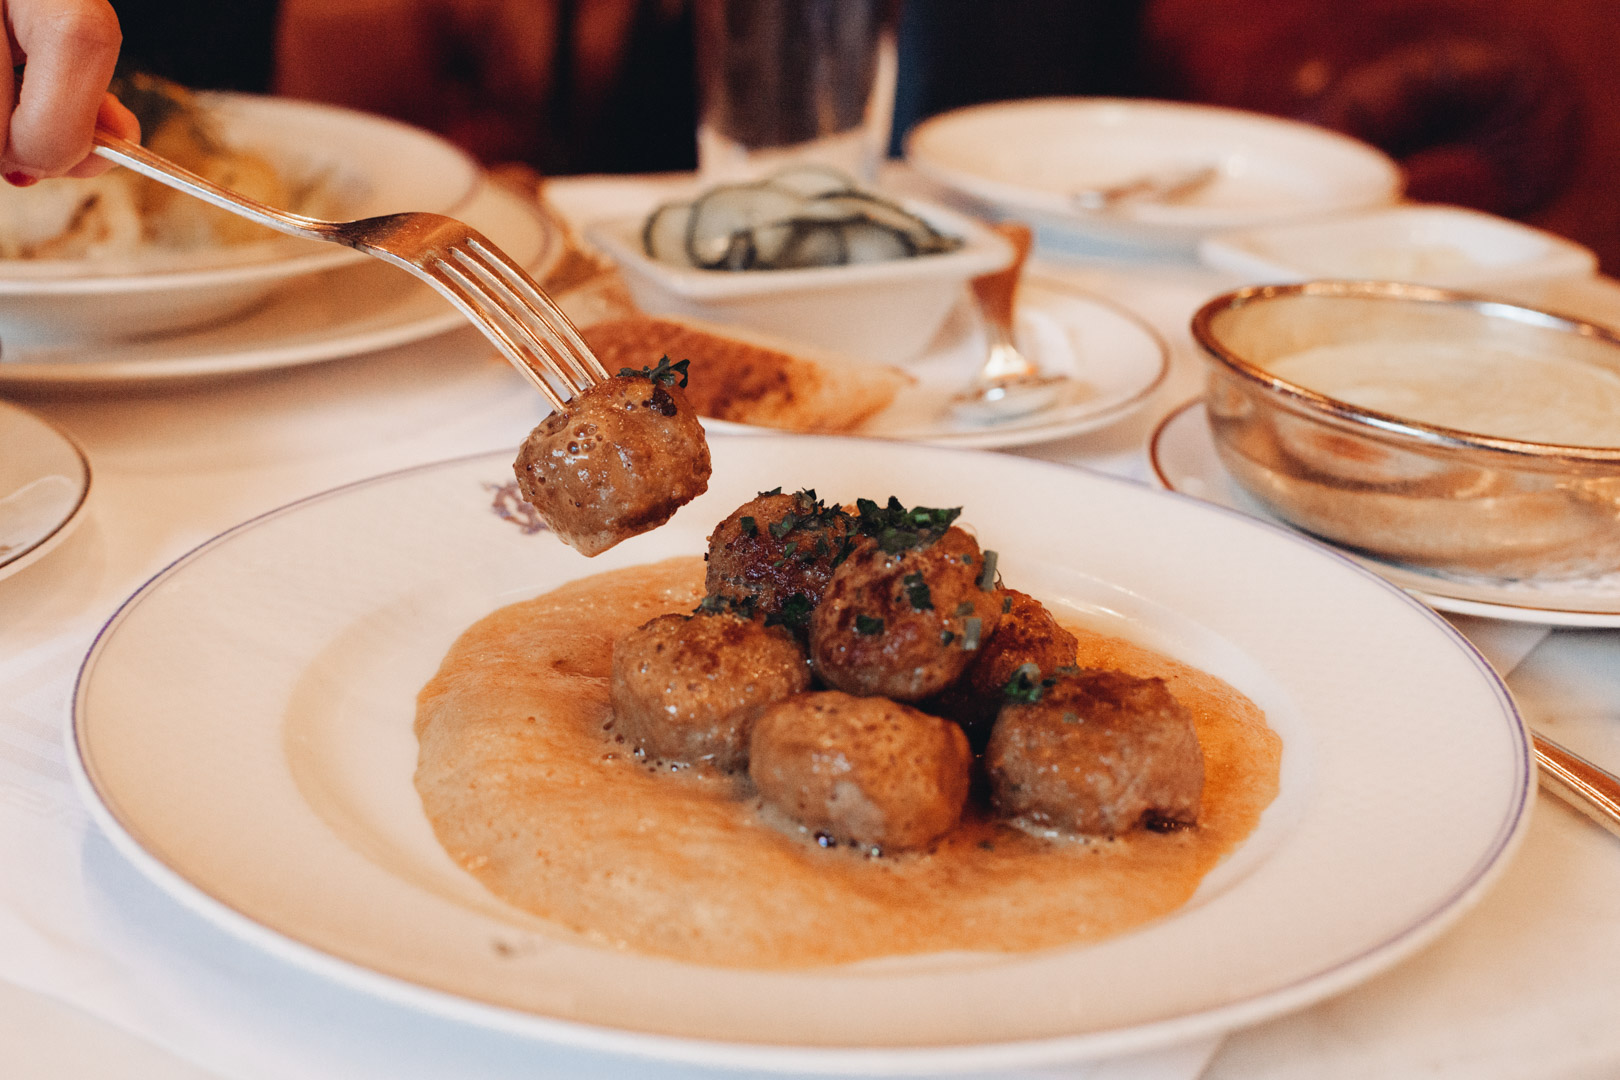 Le-Sycomore_Travel_Stockholm_meatball_cafeOpera